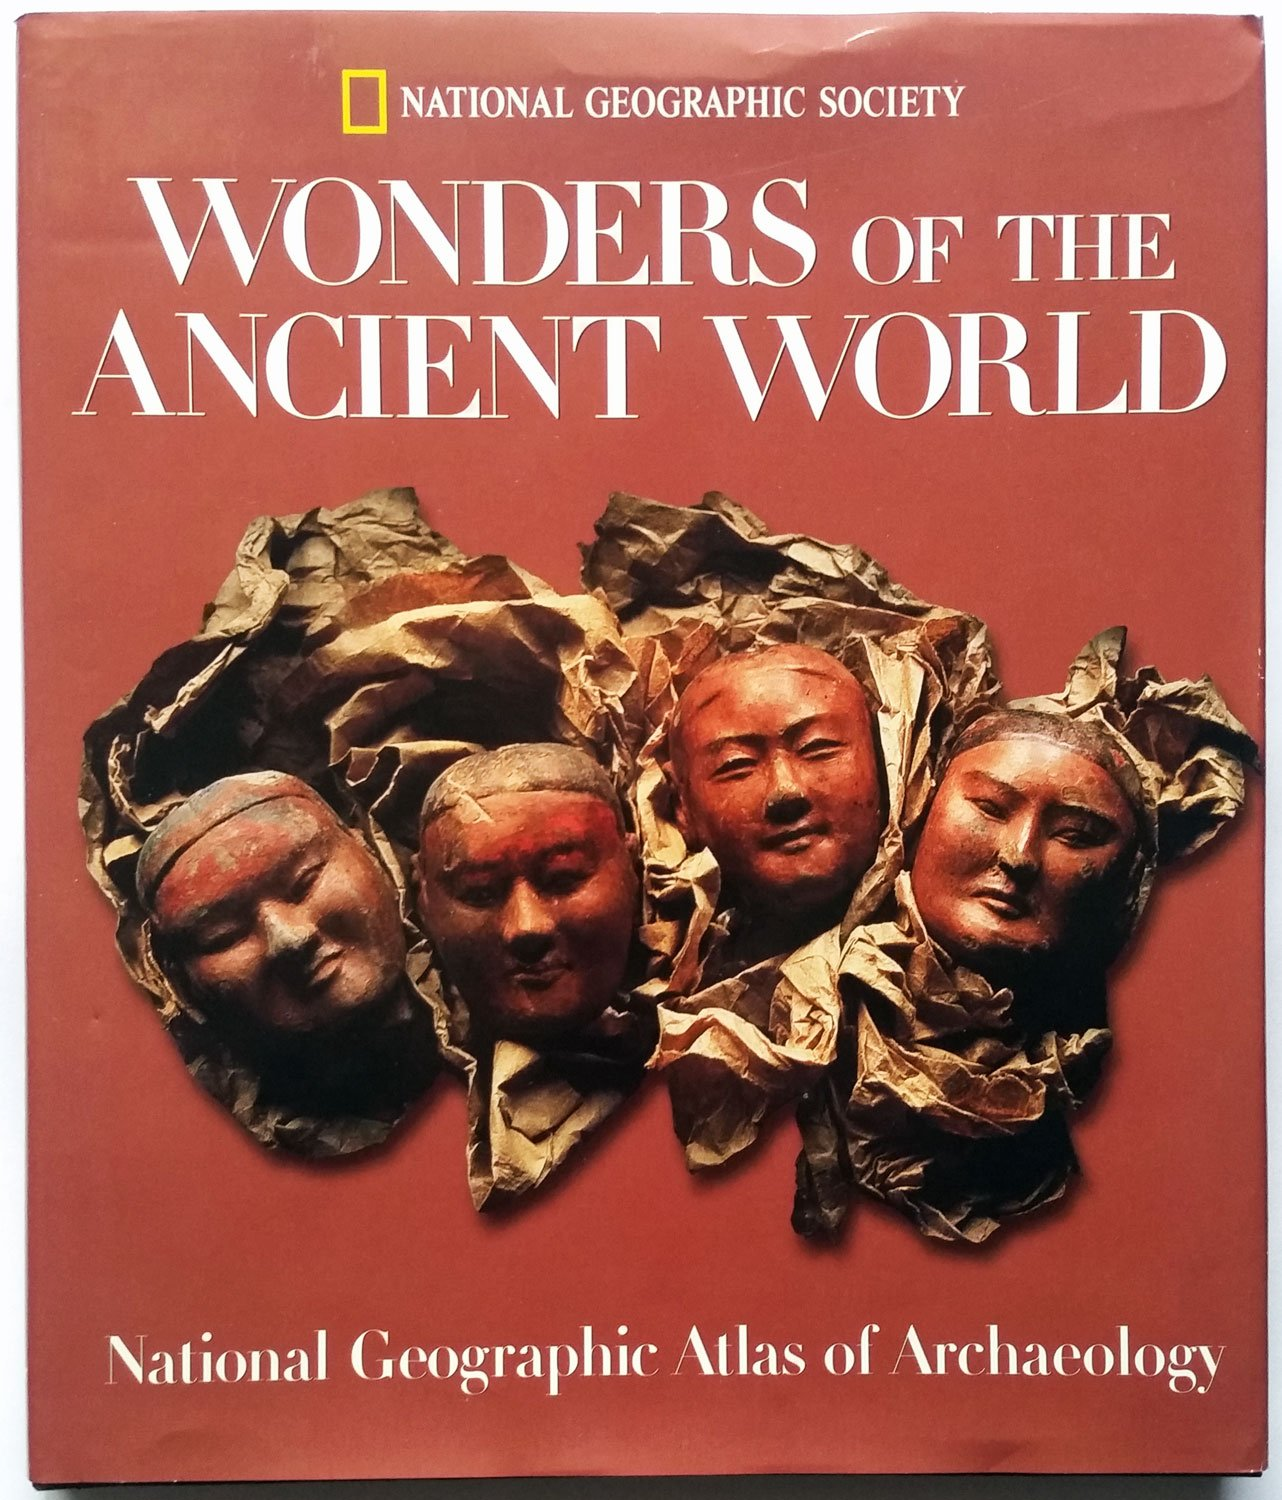 Wonders of the Ancient World: National Geographic Atlas of Archaeology